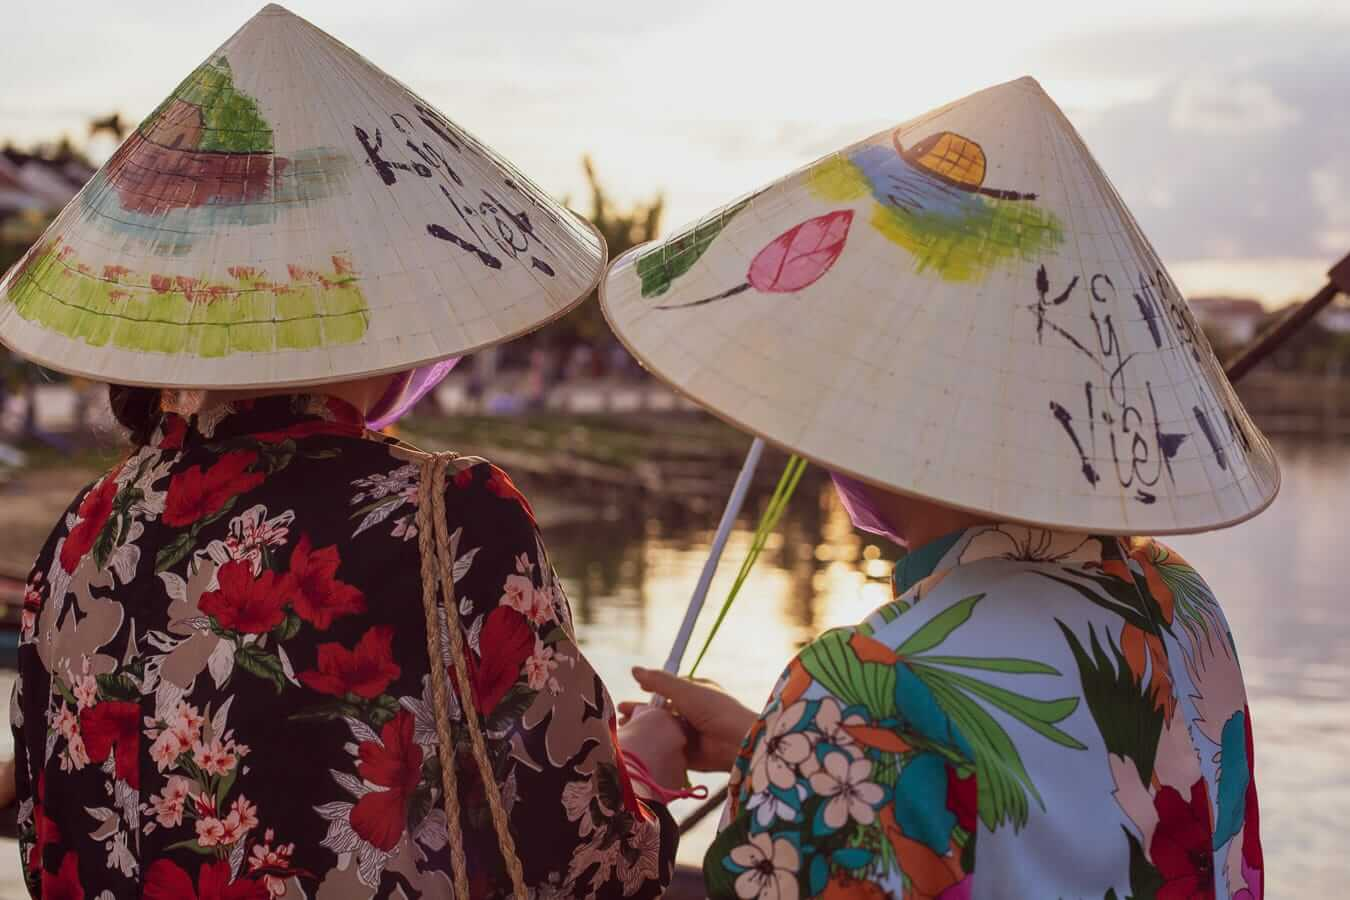 Conical hats: Where to stay in Hoi An